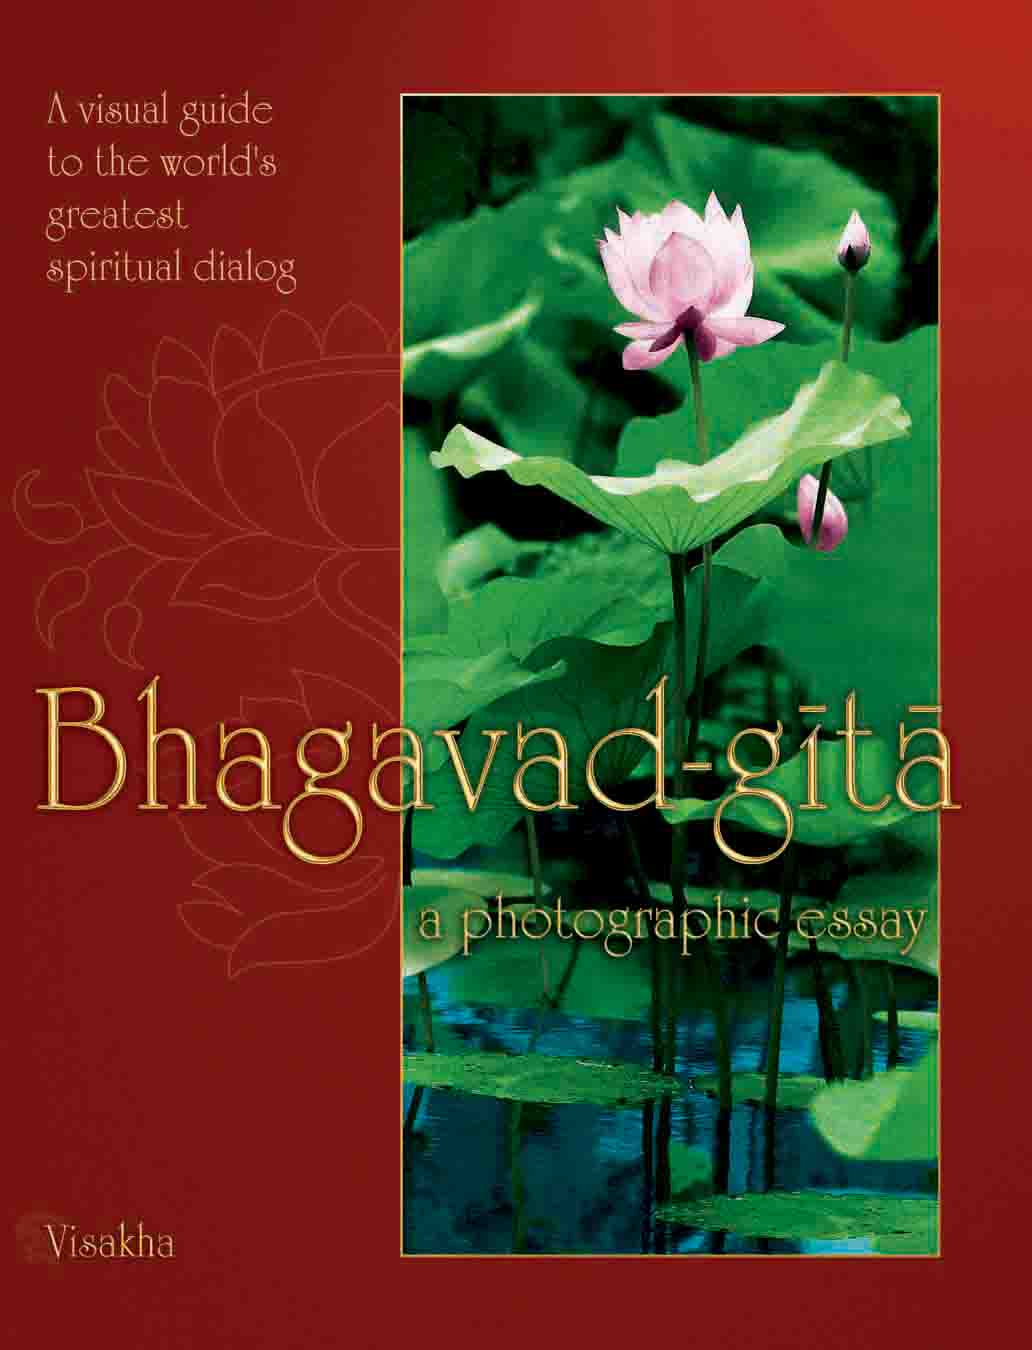 bhagavad gita essay bhagavad gita essay the bhagavadgita essays a photo essay for clarity and fun adventures in bhakti yogathe bhagavad gita that teens can